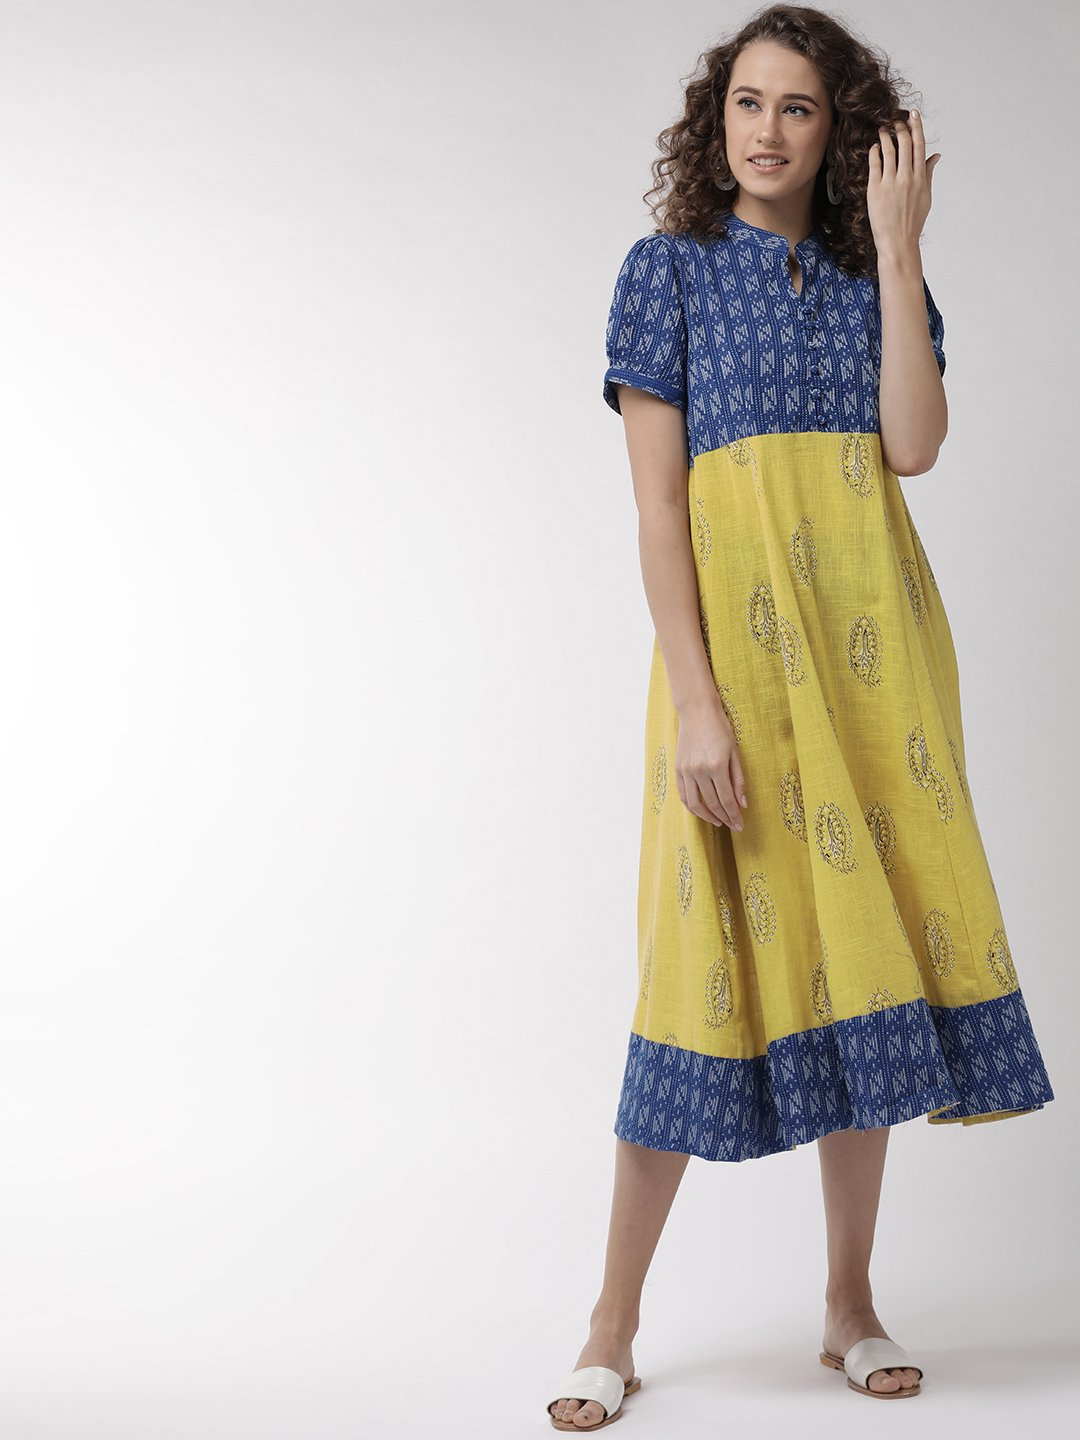 Blue with Mustard Prints Dress